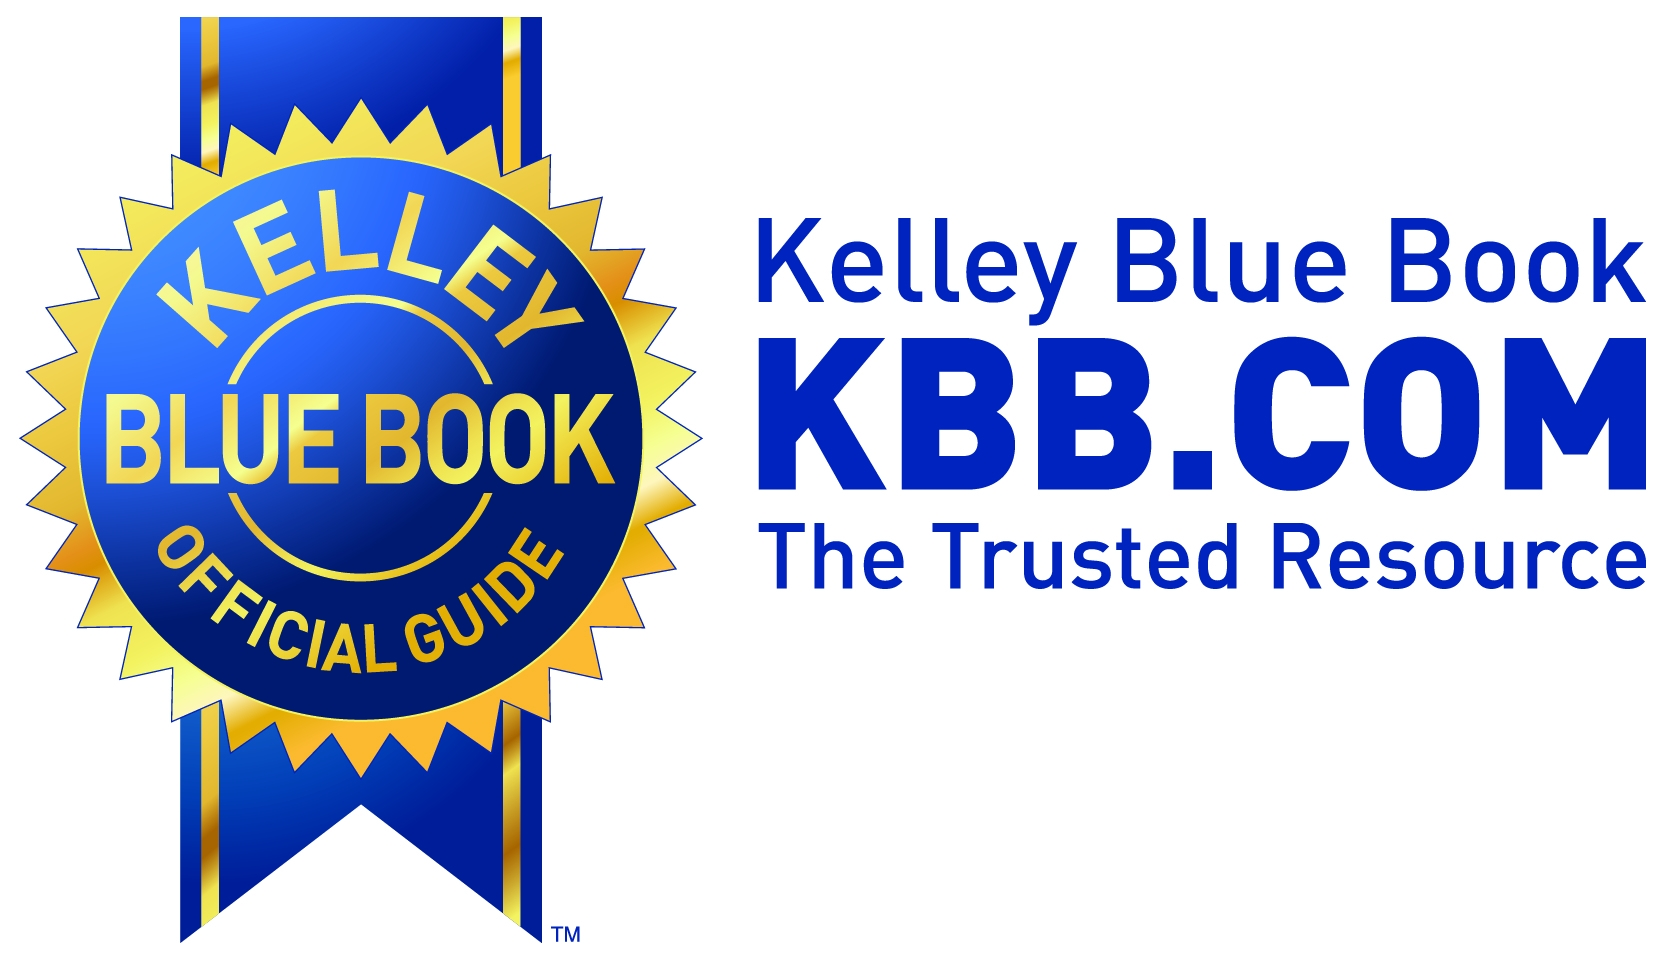 kelley blue book dealer invoice price kelley blue book wikipedia the free encyclopedia 1660 X 959